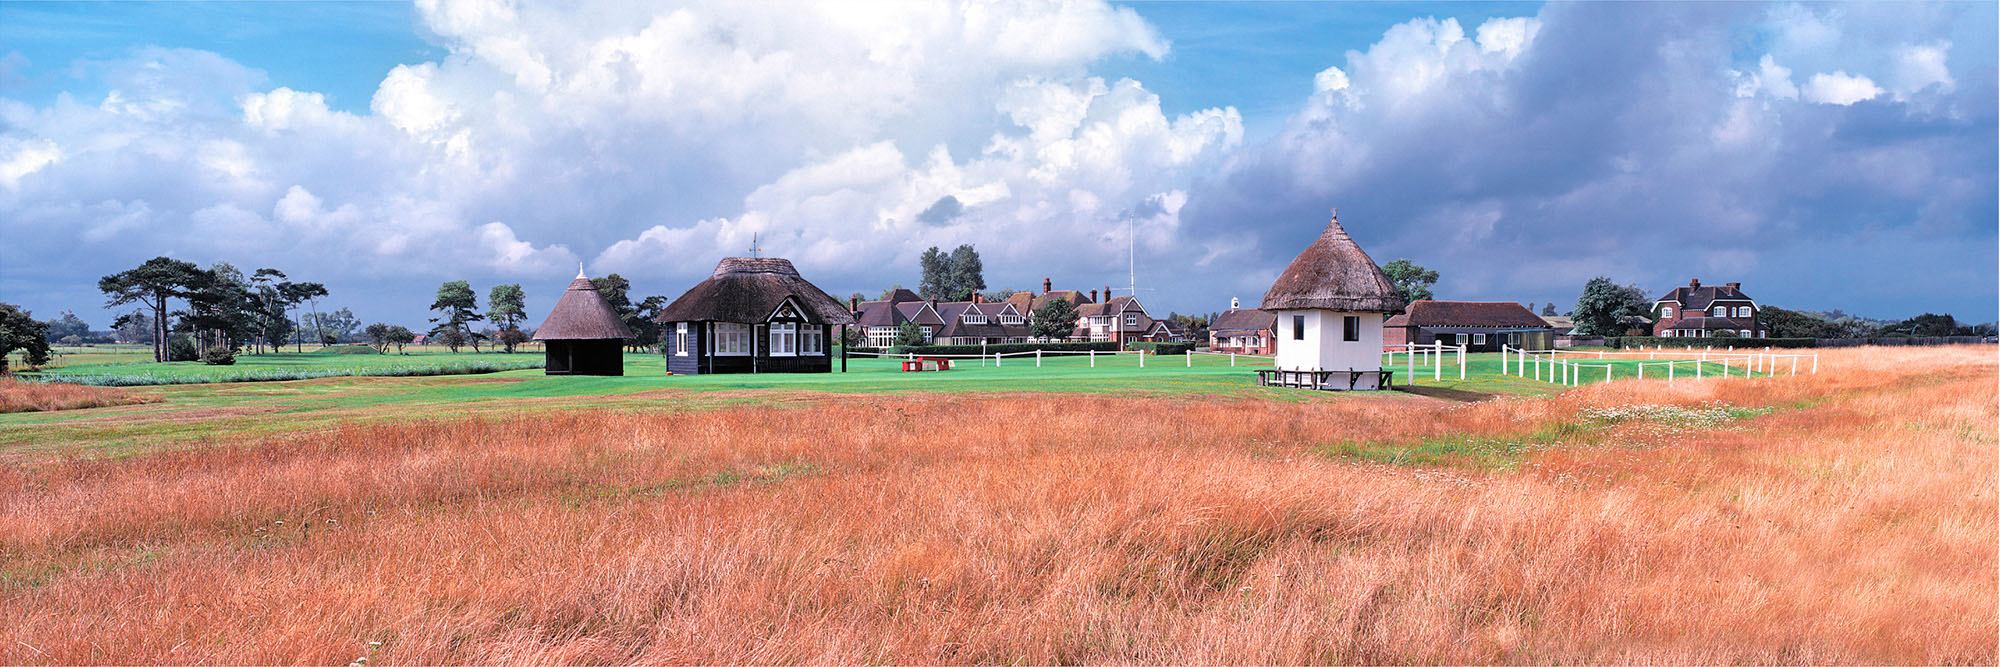 Golf Course Image - Royal St George's Golf Club No. 1